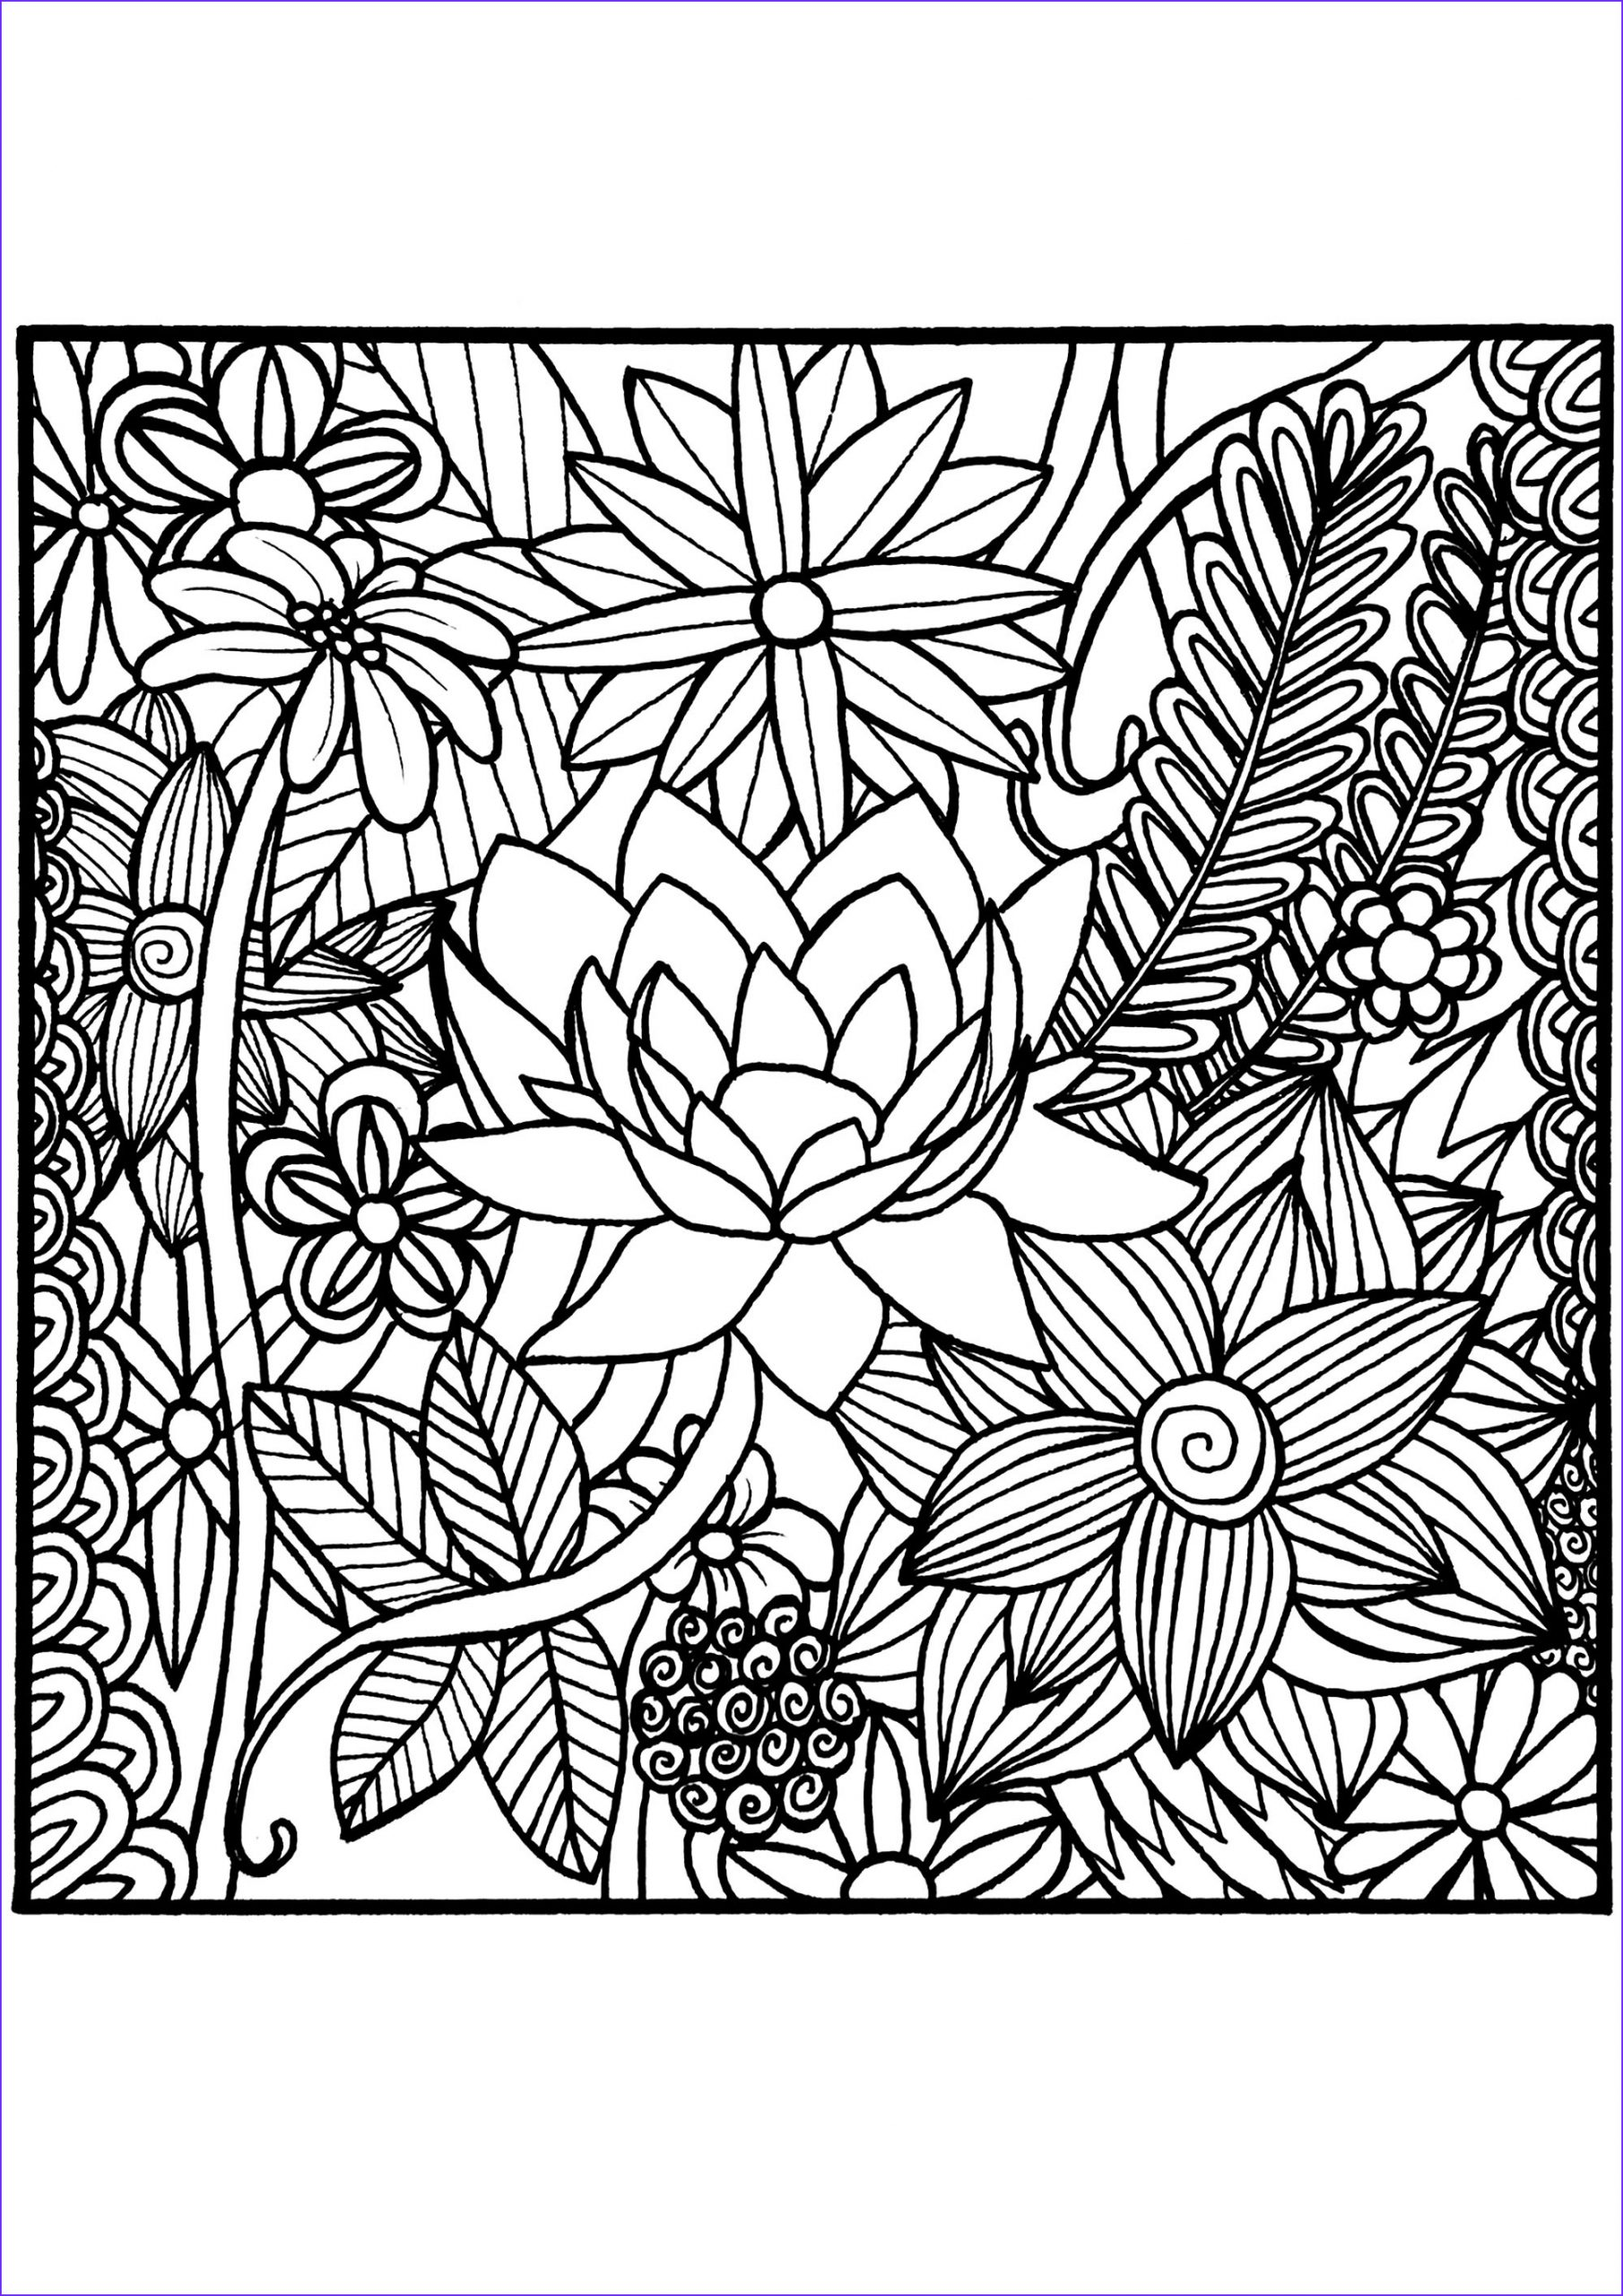 Color Coloring Book Luxury Gallery Flowers In A Square Flowers Adult Coloring Pages